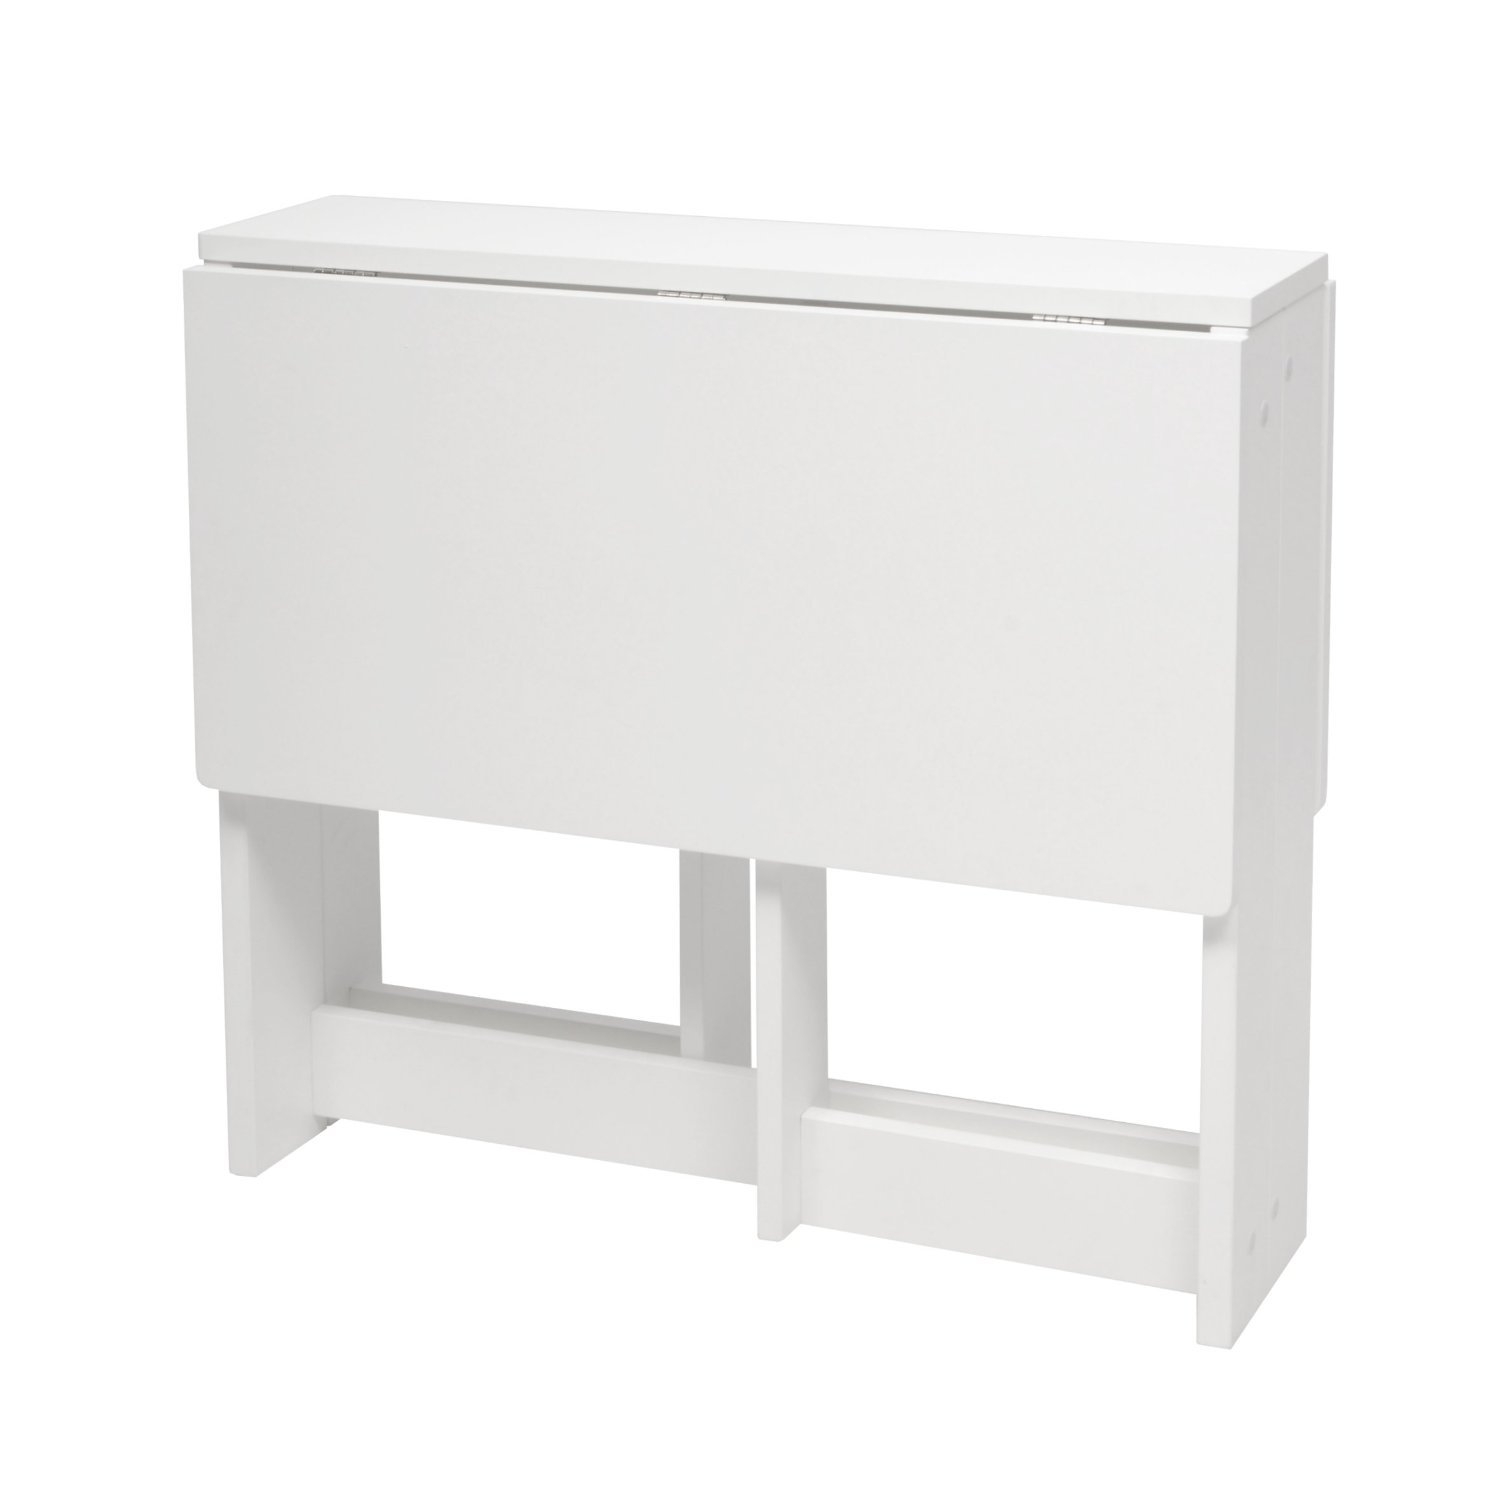 Tables pliables - Table de cuisine ikea pliante ...